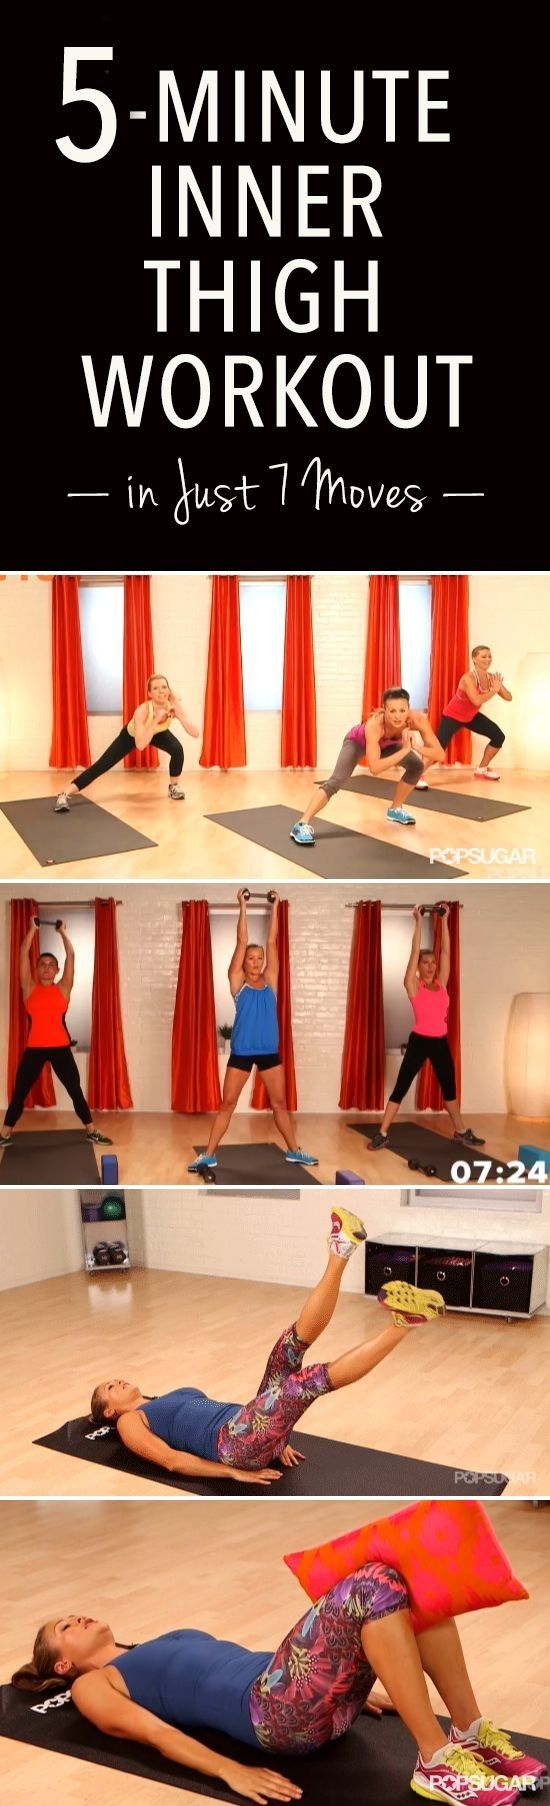 Flabby to Fit in 5, with These Magical 5-minute Workouts ...